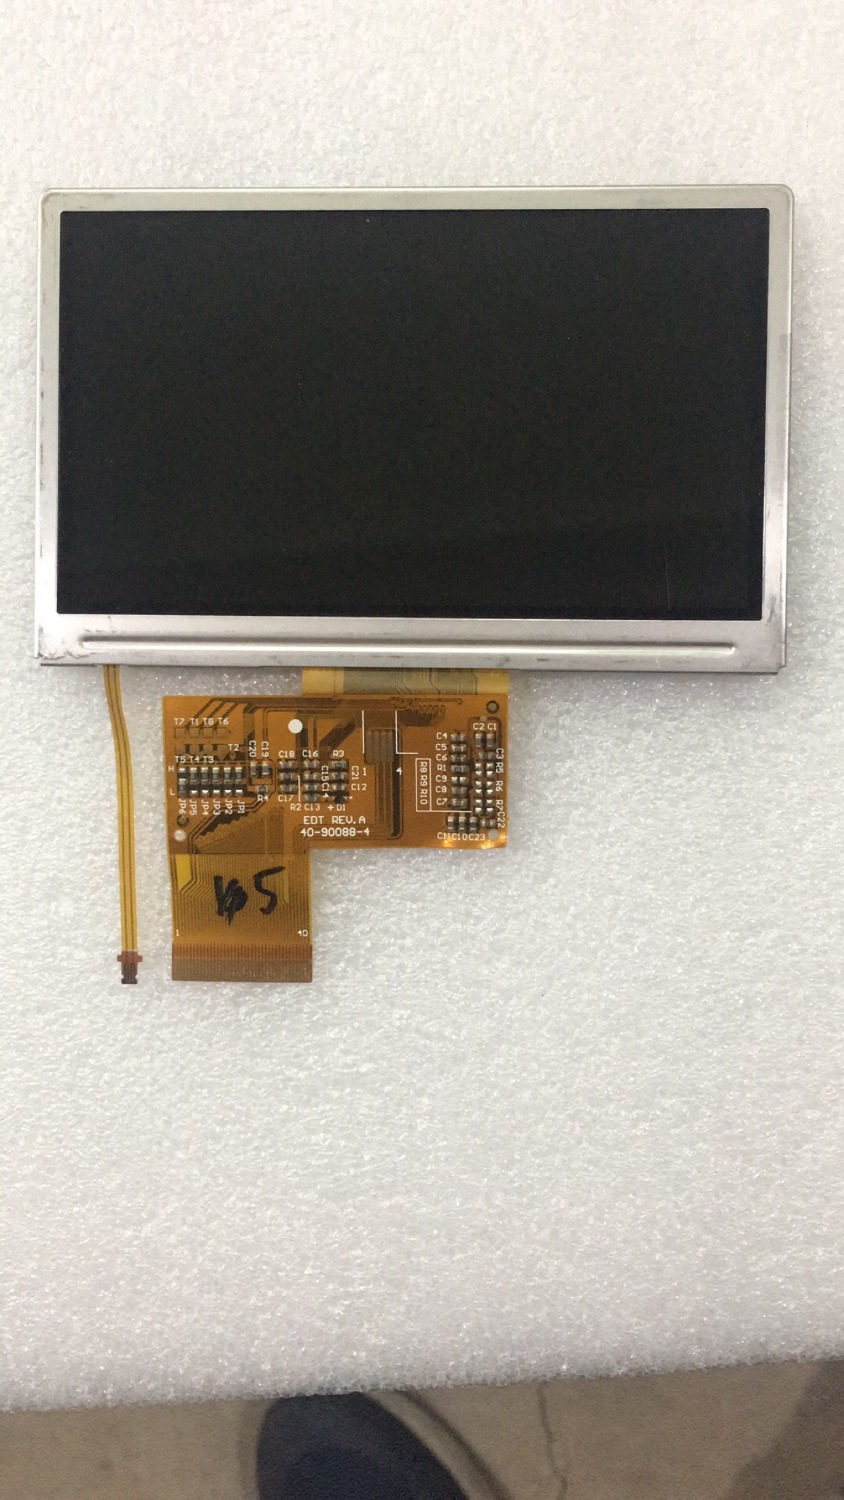 ET0430B6DM6 x1 ET0430B6DM6 compatible x1 SCN A5 FLT10.4 Z03 0H1 R x3-in LCD Modules from Electronic Components & Supplies    1